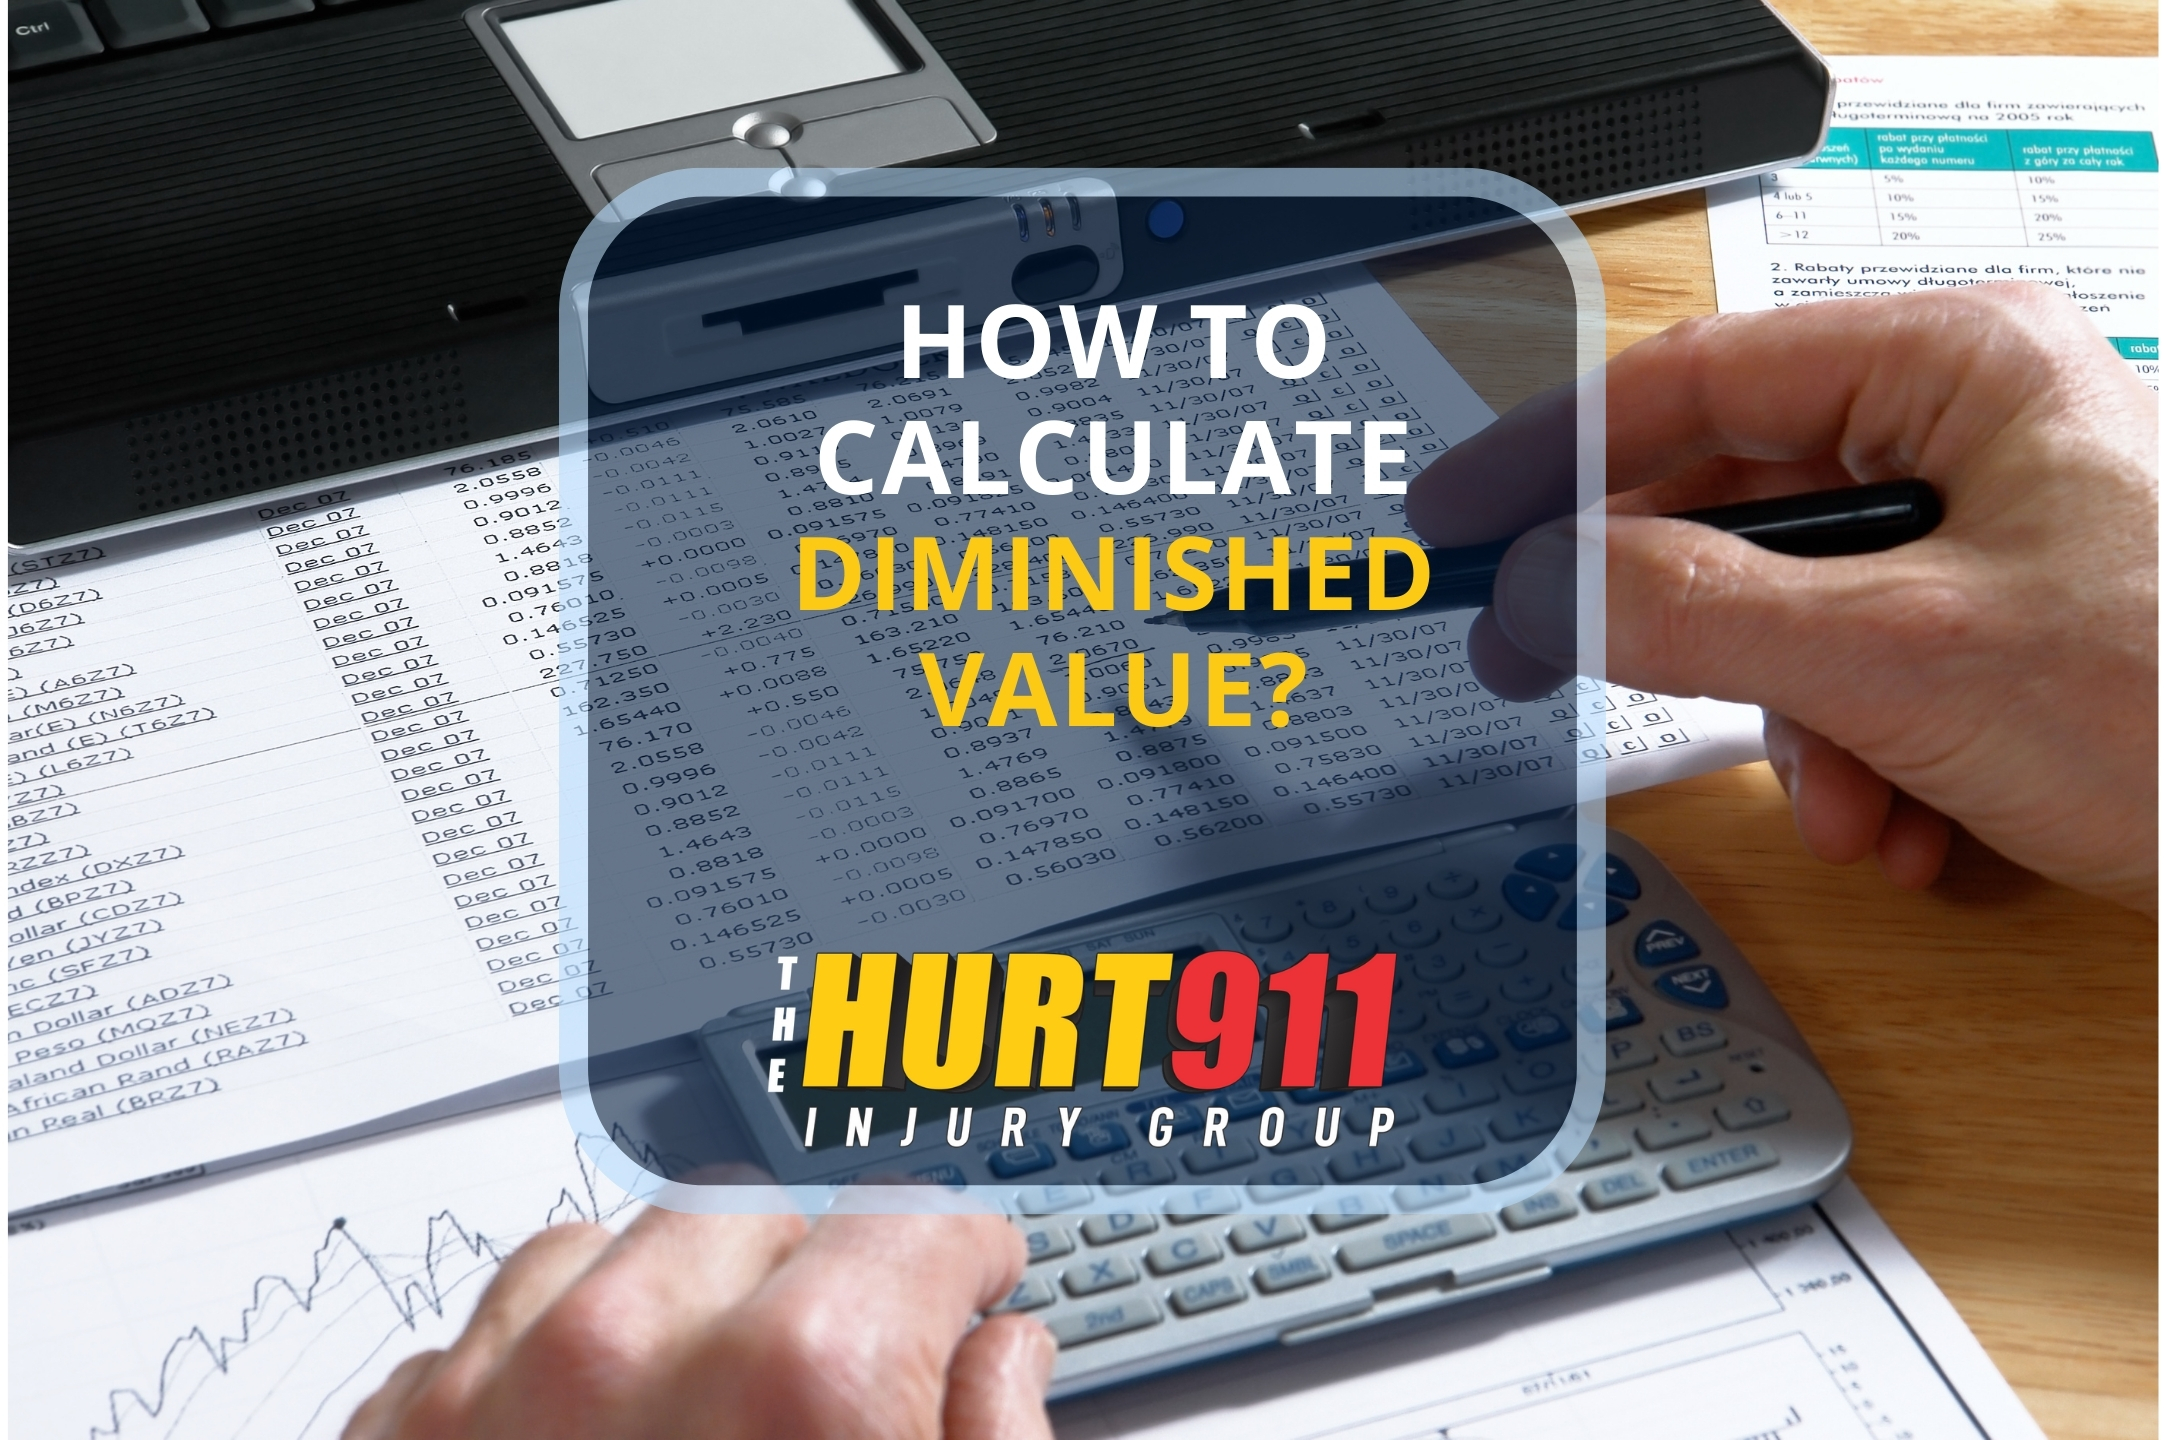 How to Calculate Diminished Value?